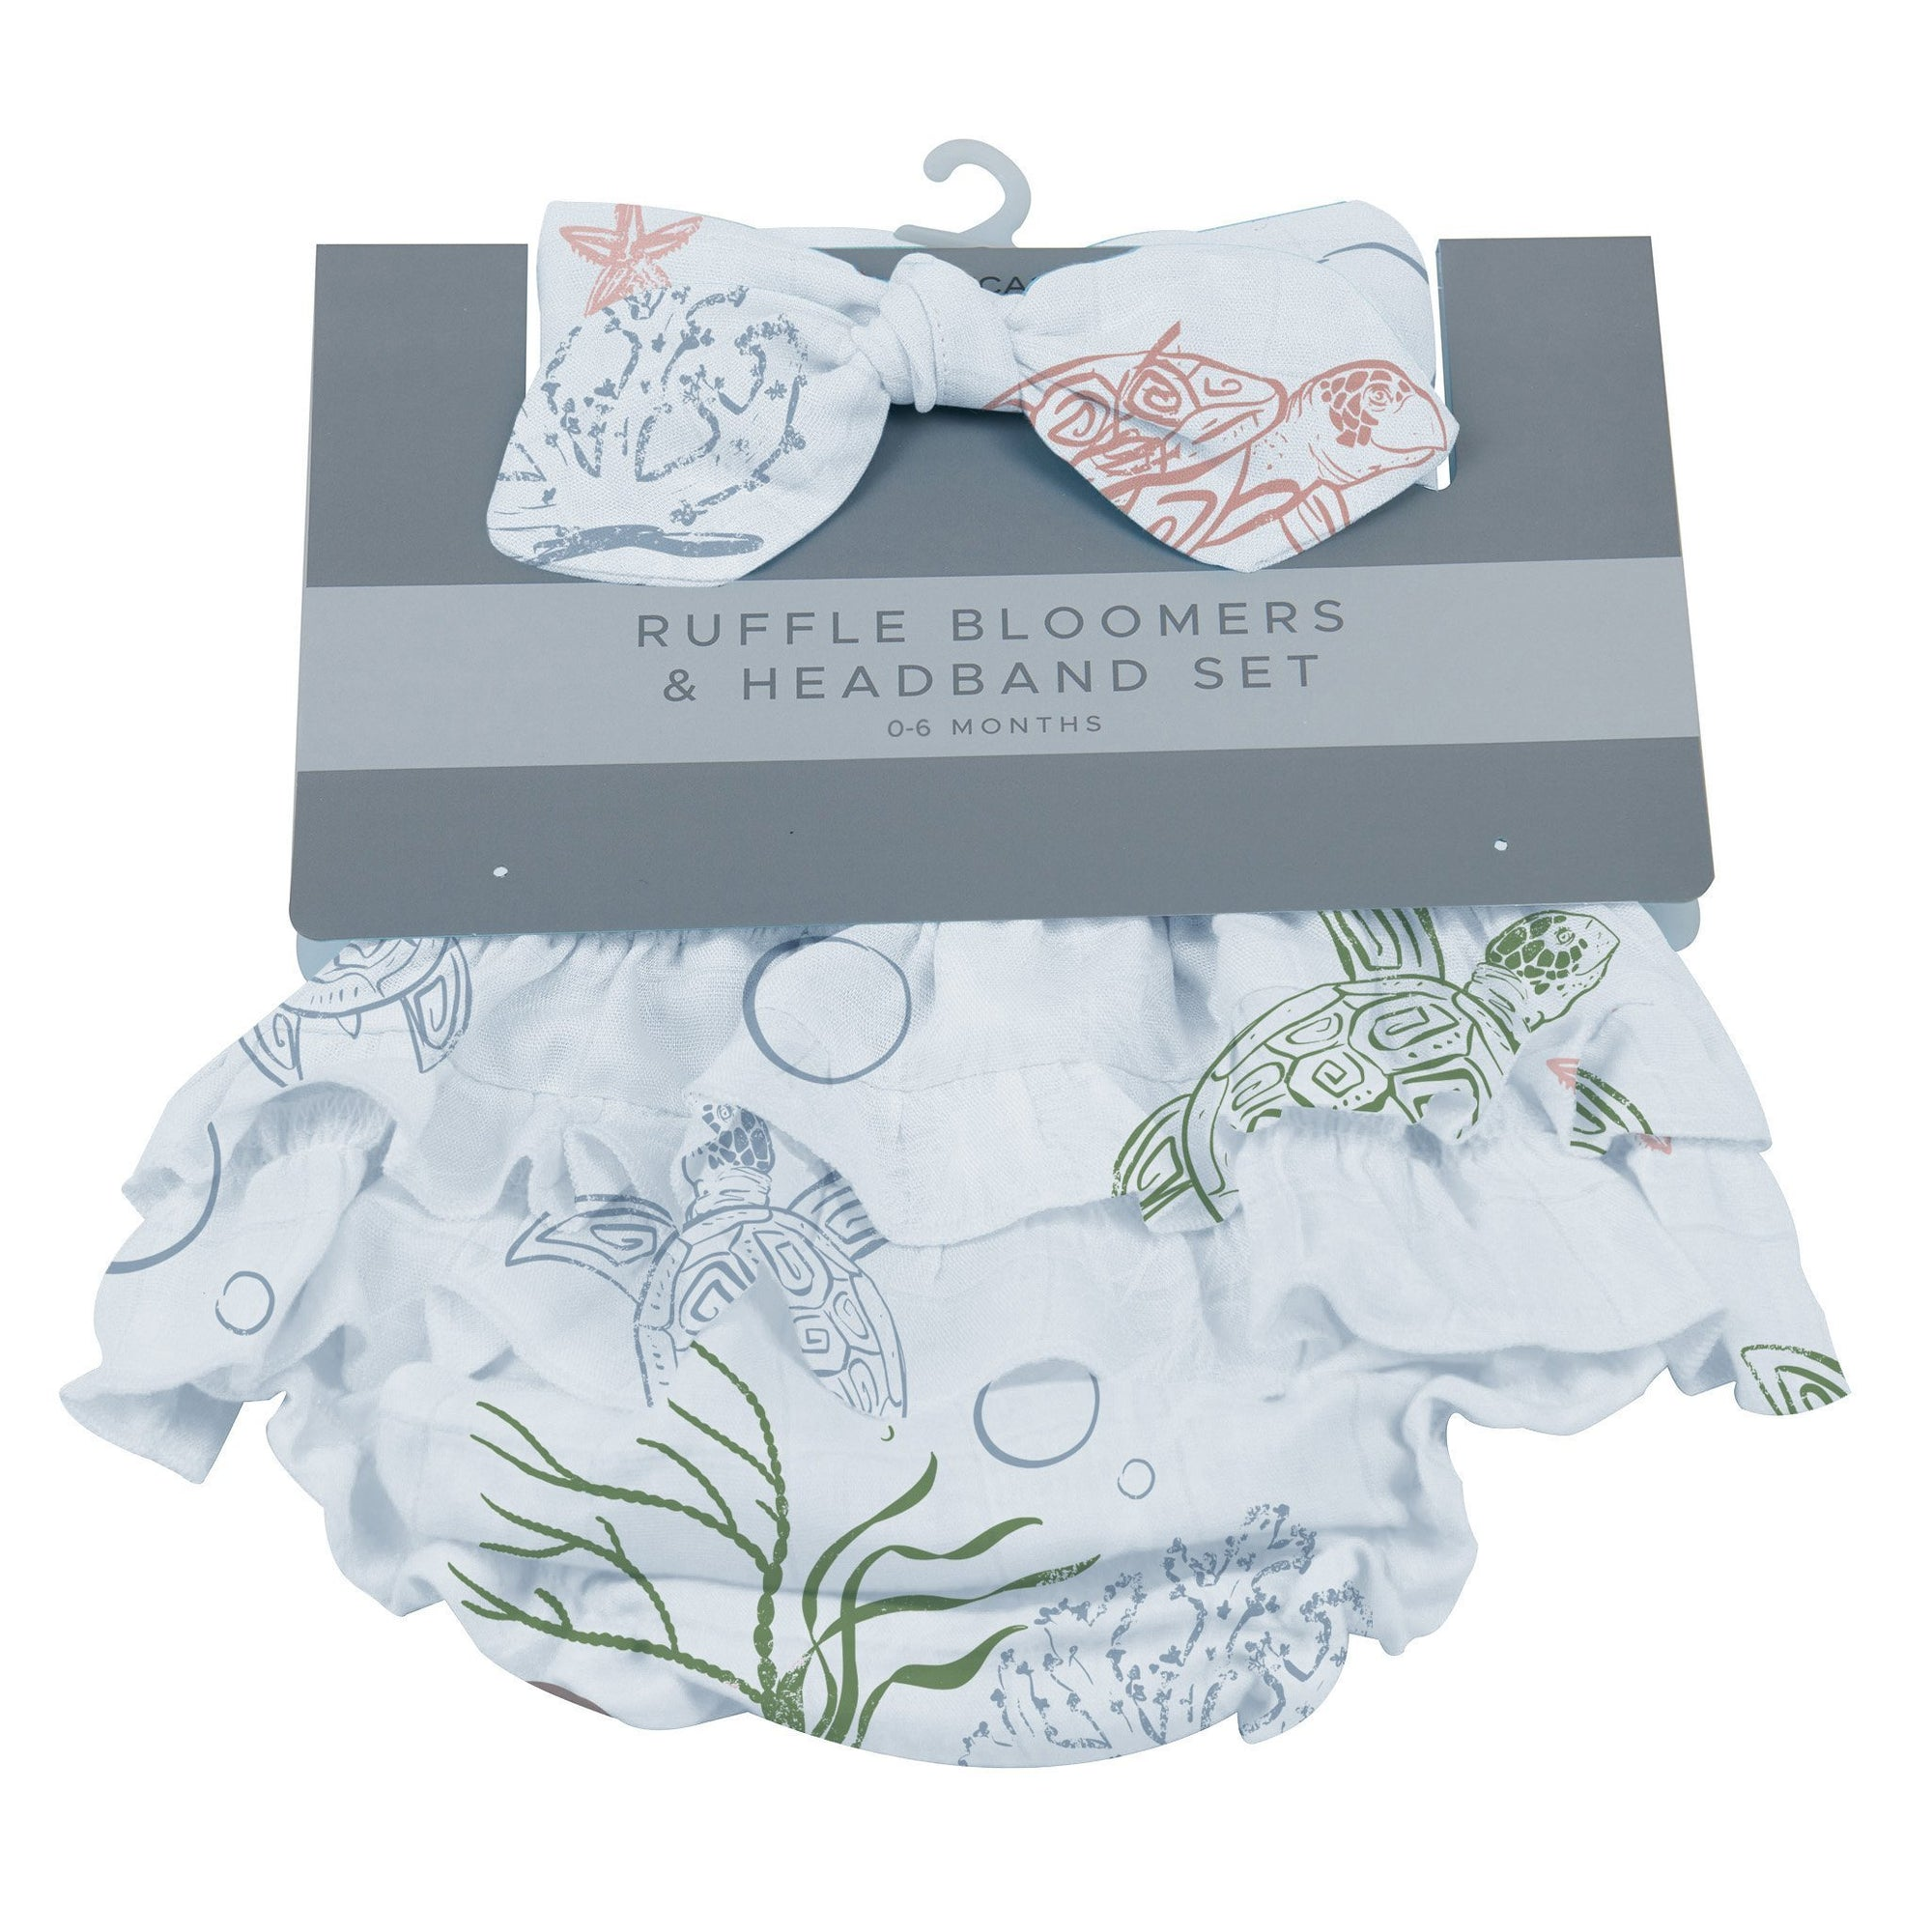 Ruffle Bloomers and Headband Set - Turtles